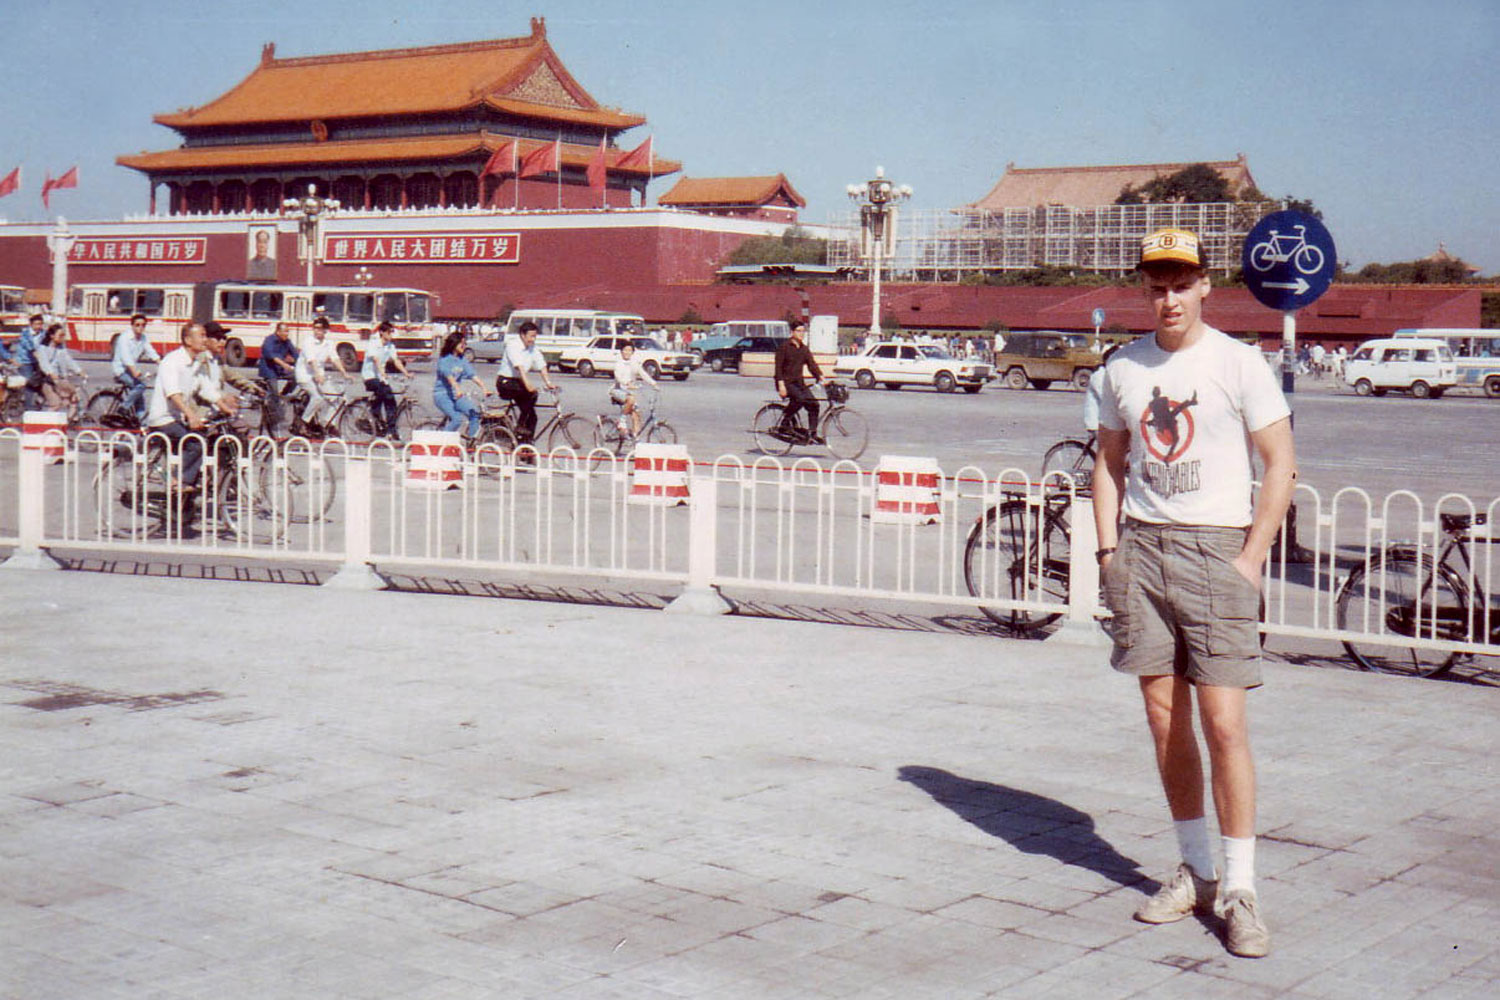 A photograph of Kirk Martsen in Tiananmen Square in 1989. Martsen helped Associated Press photographer Jeff Widener smuggle out the film containing the now-iconic photograph of the lone man facing down a row of tanks.